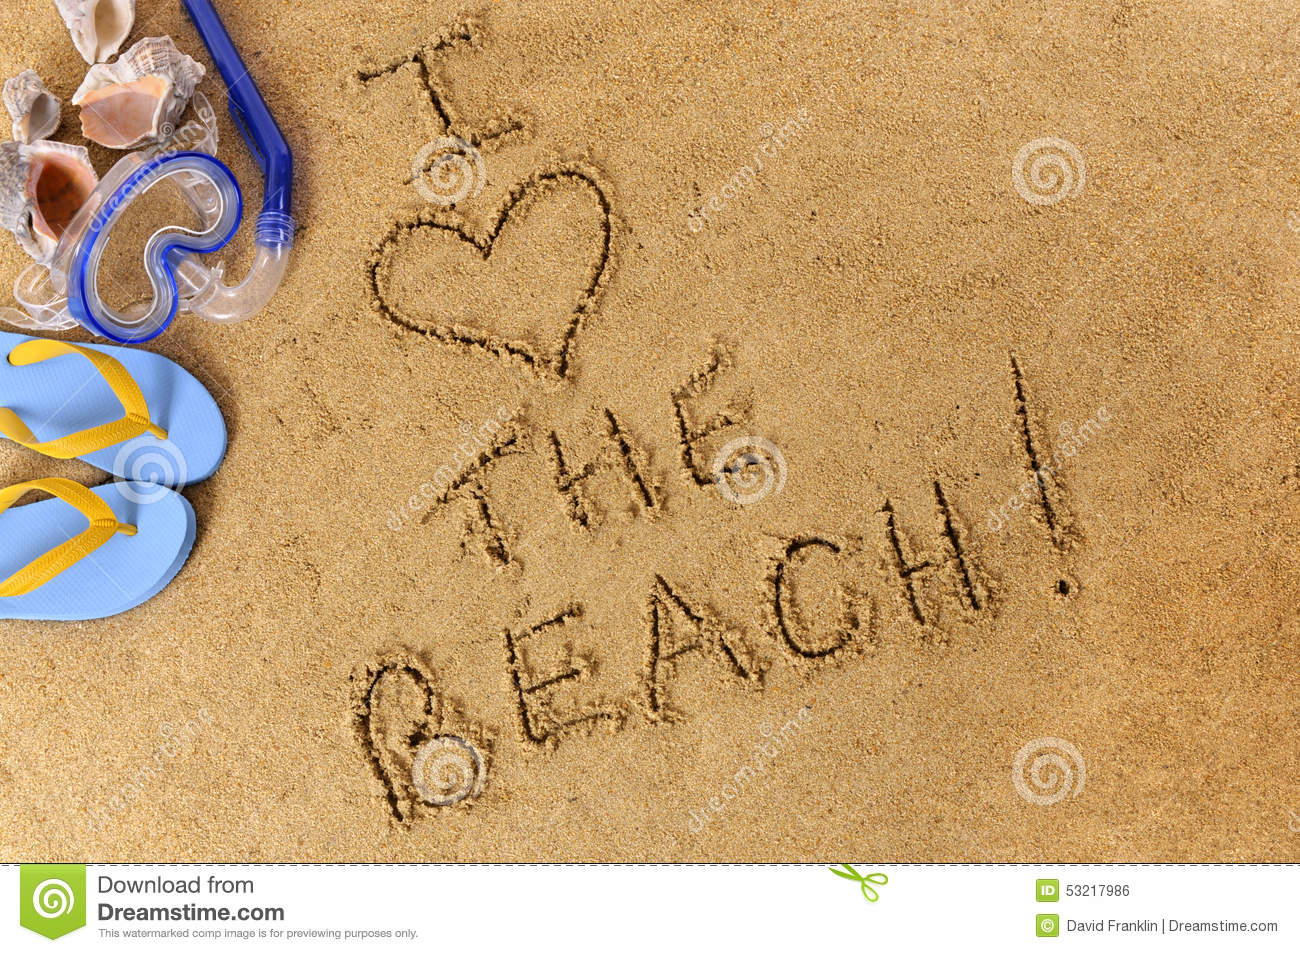 a summer day at the beach essay Free essays on descriptive essay about hot summer day a day at the beach  maria 10-8-13 it was a warm, humid sunny day in west palm beach, the.